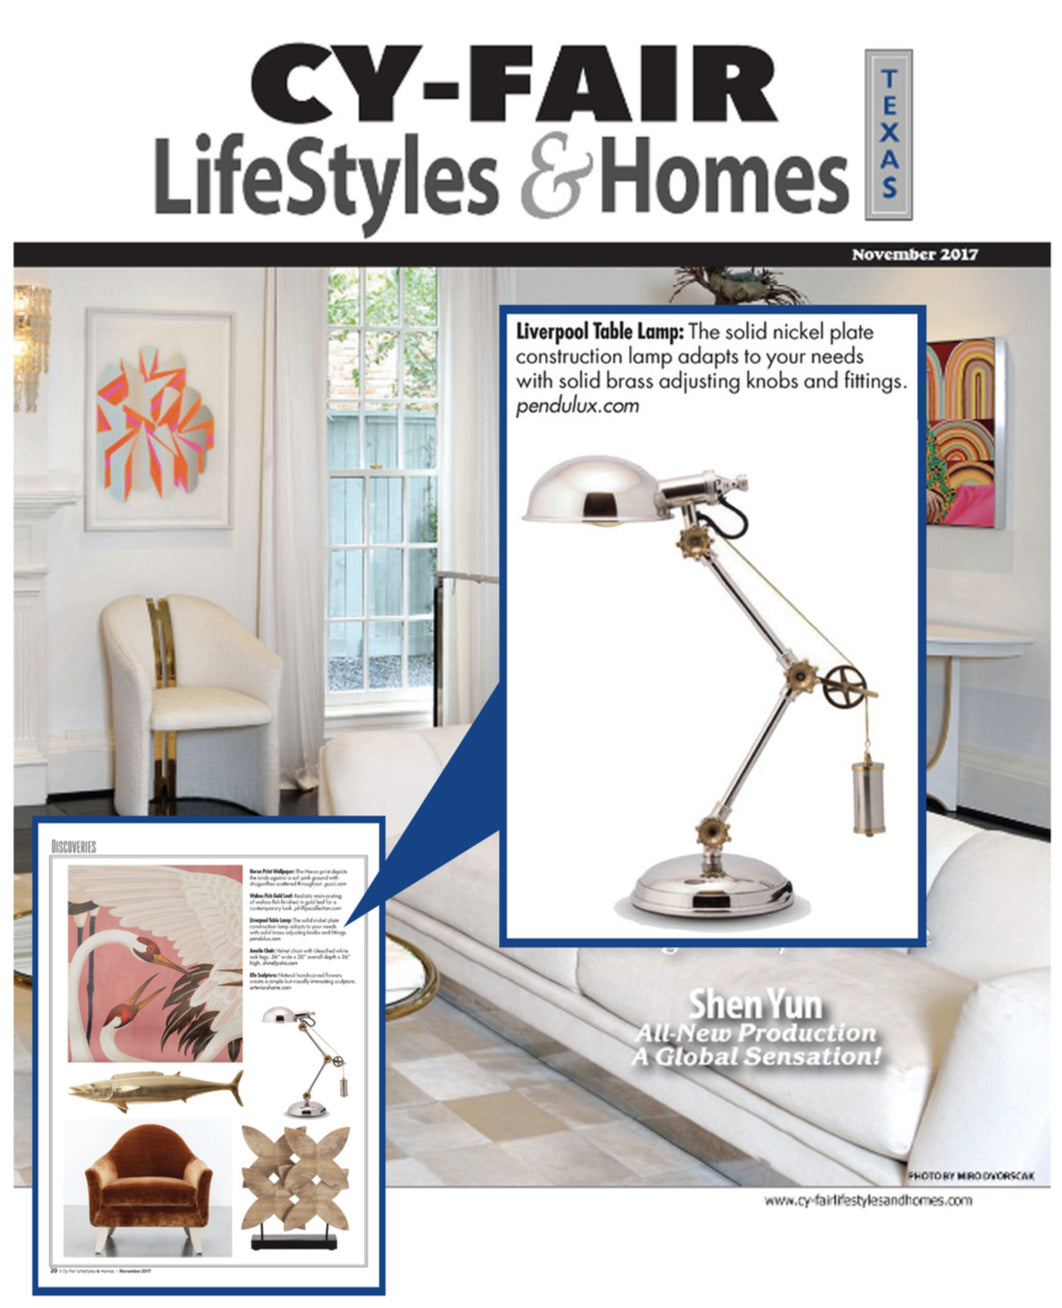 LifeStyles & Homes